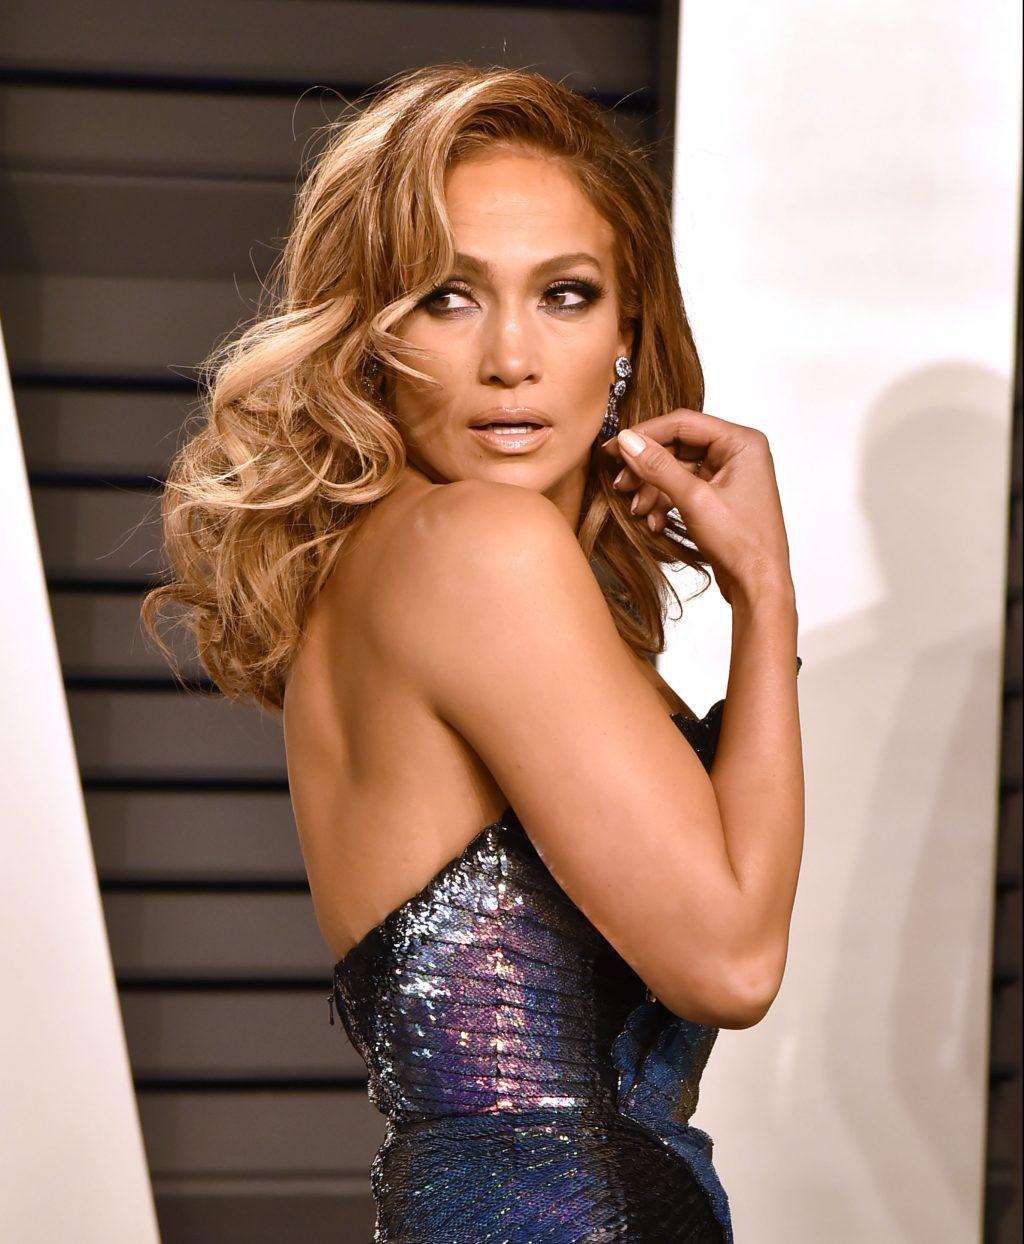 #Hairspo: 50 Times J.Lo's Hair Gave Us Life